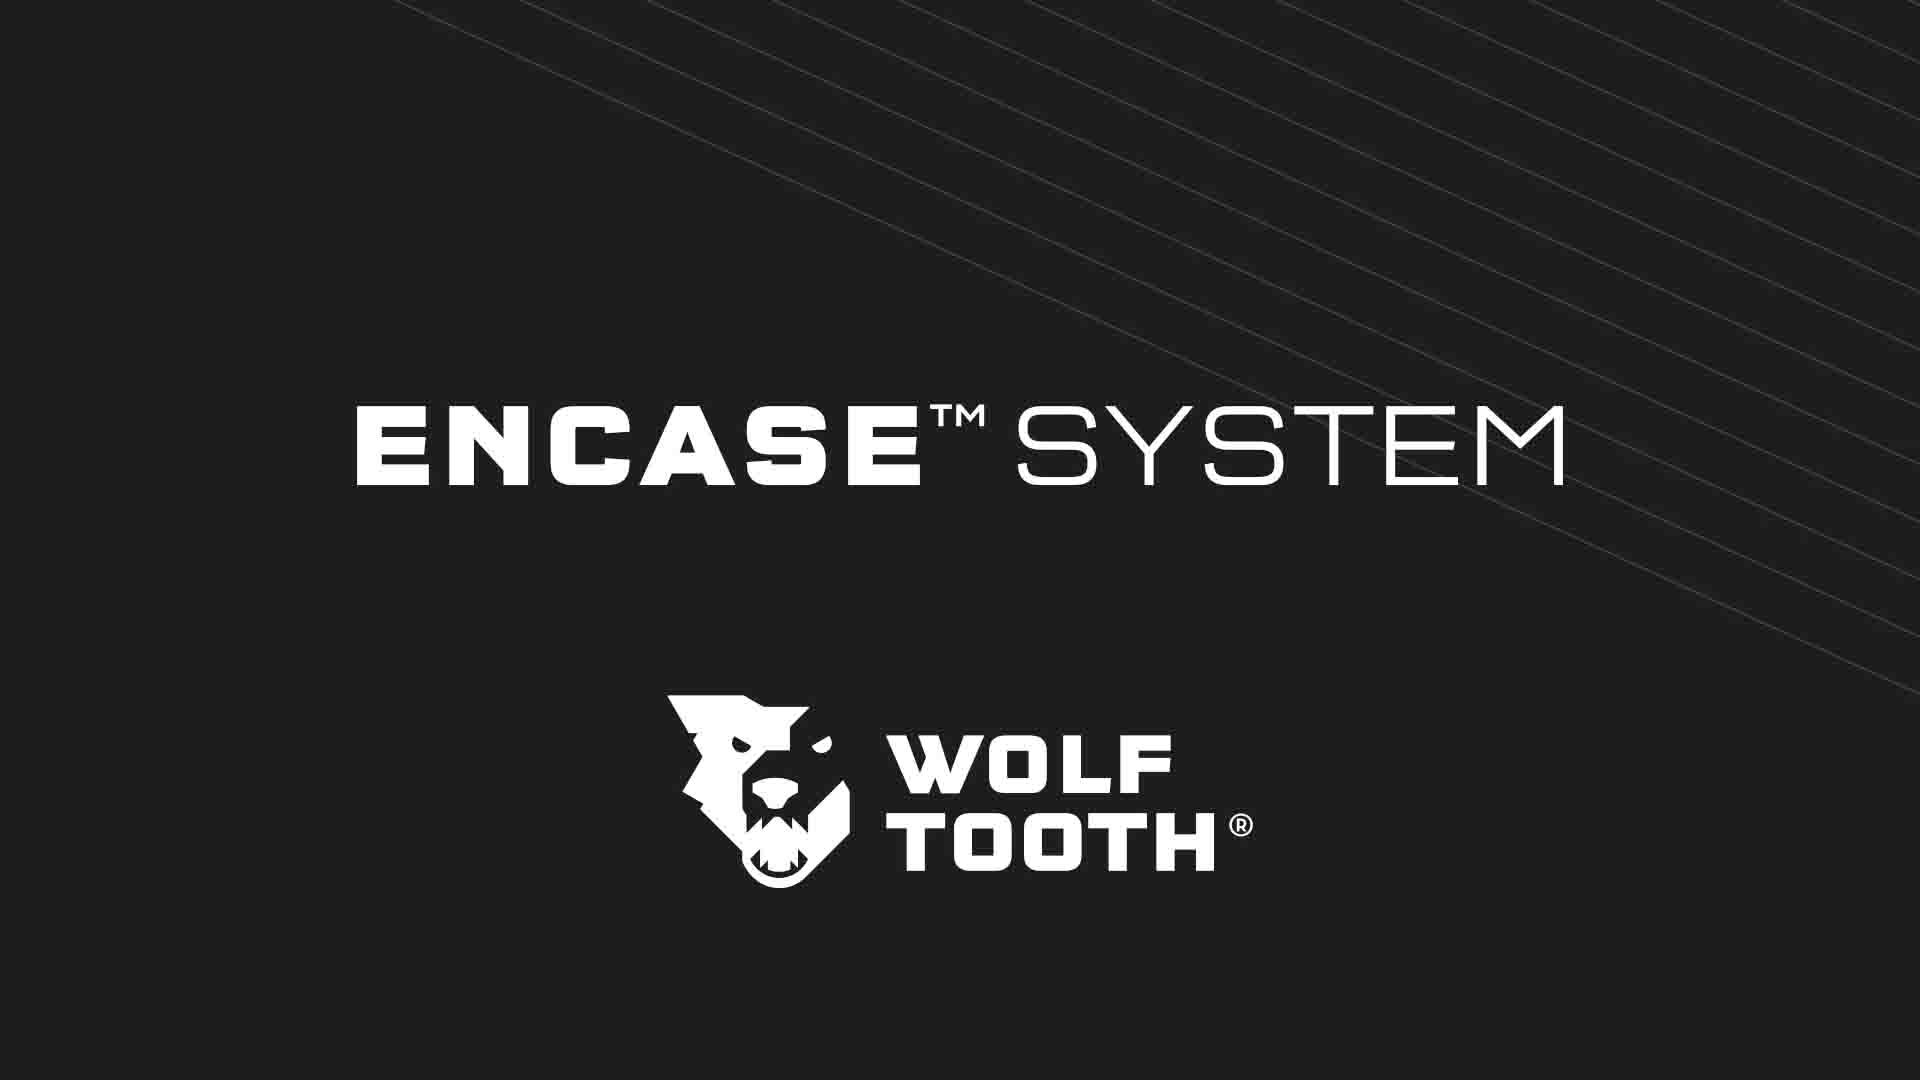 Wolf Tooth EnCase System Introduction